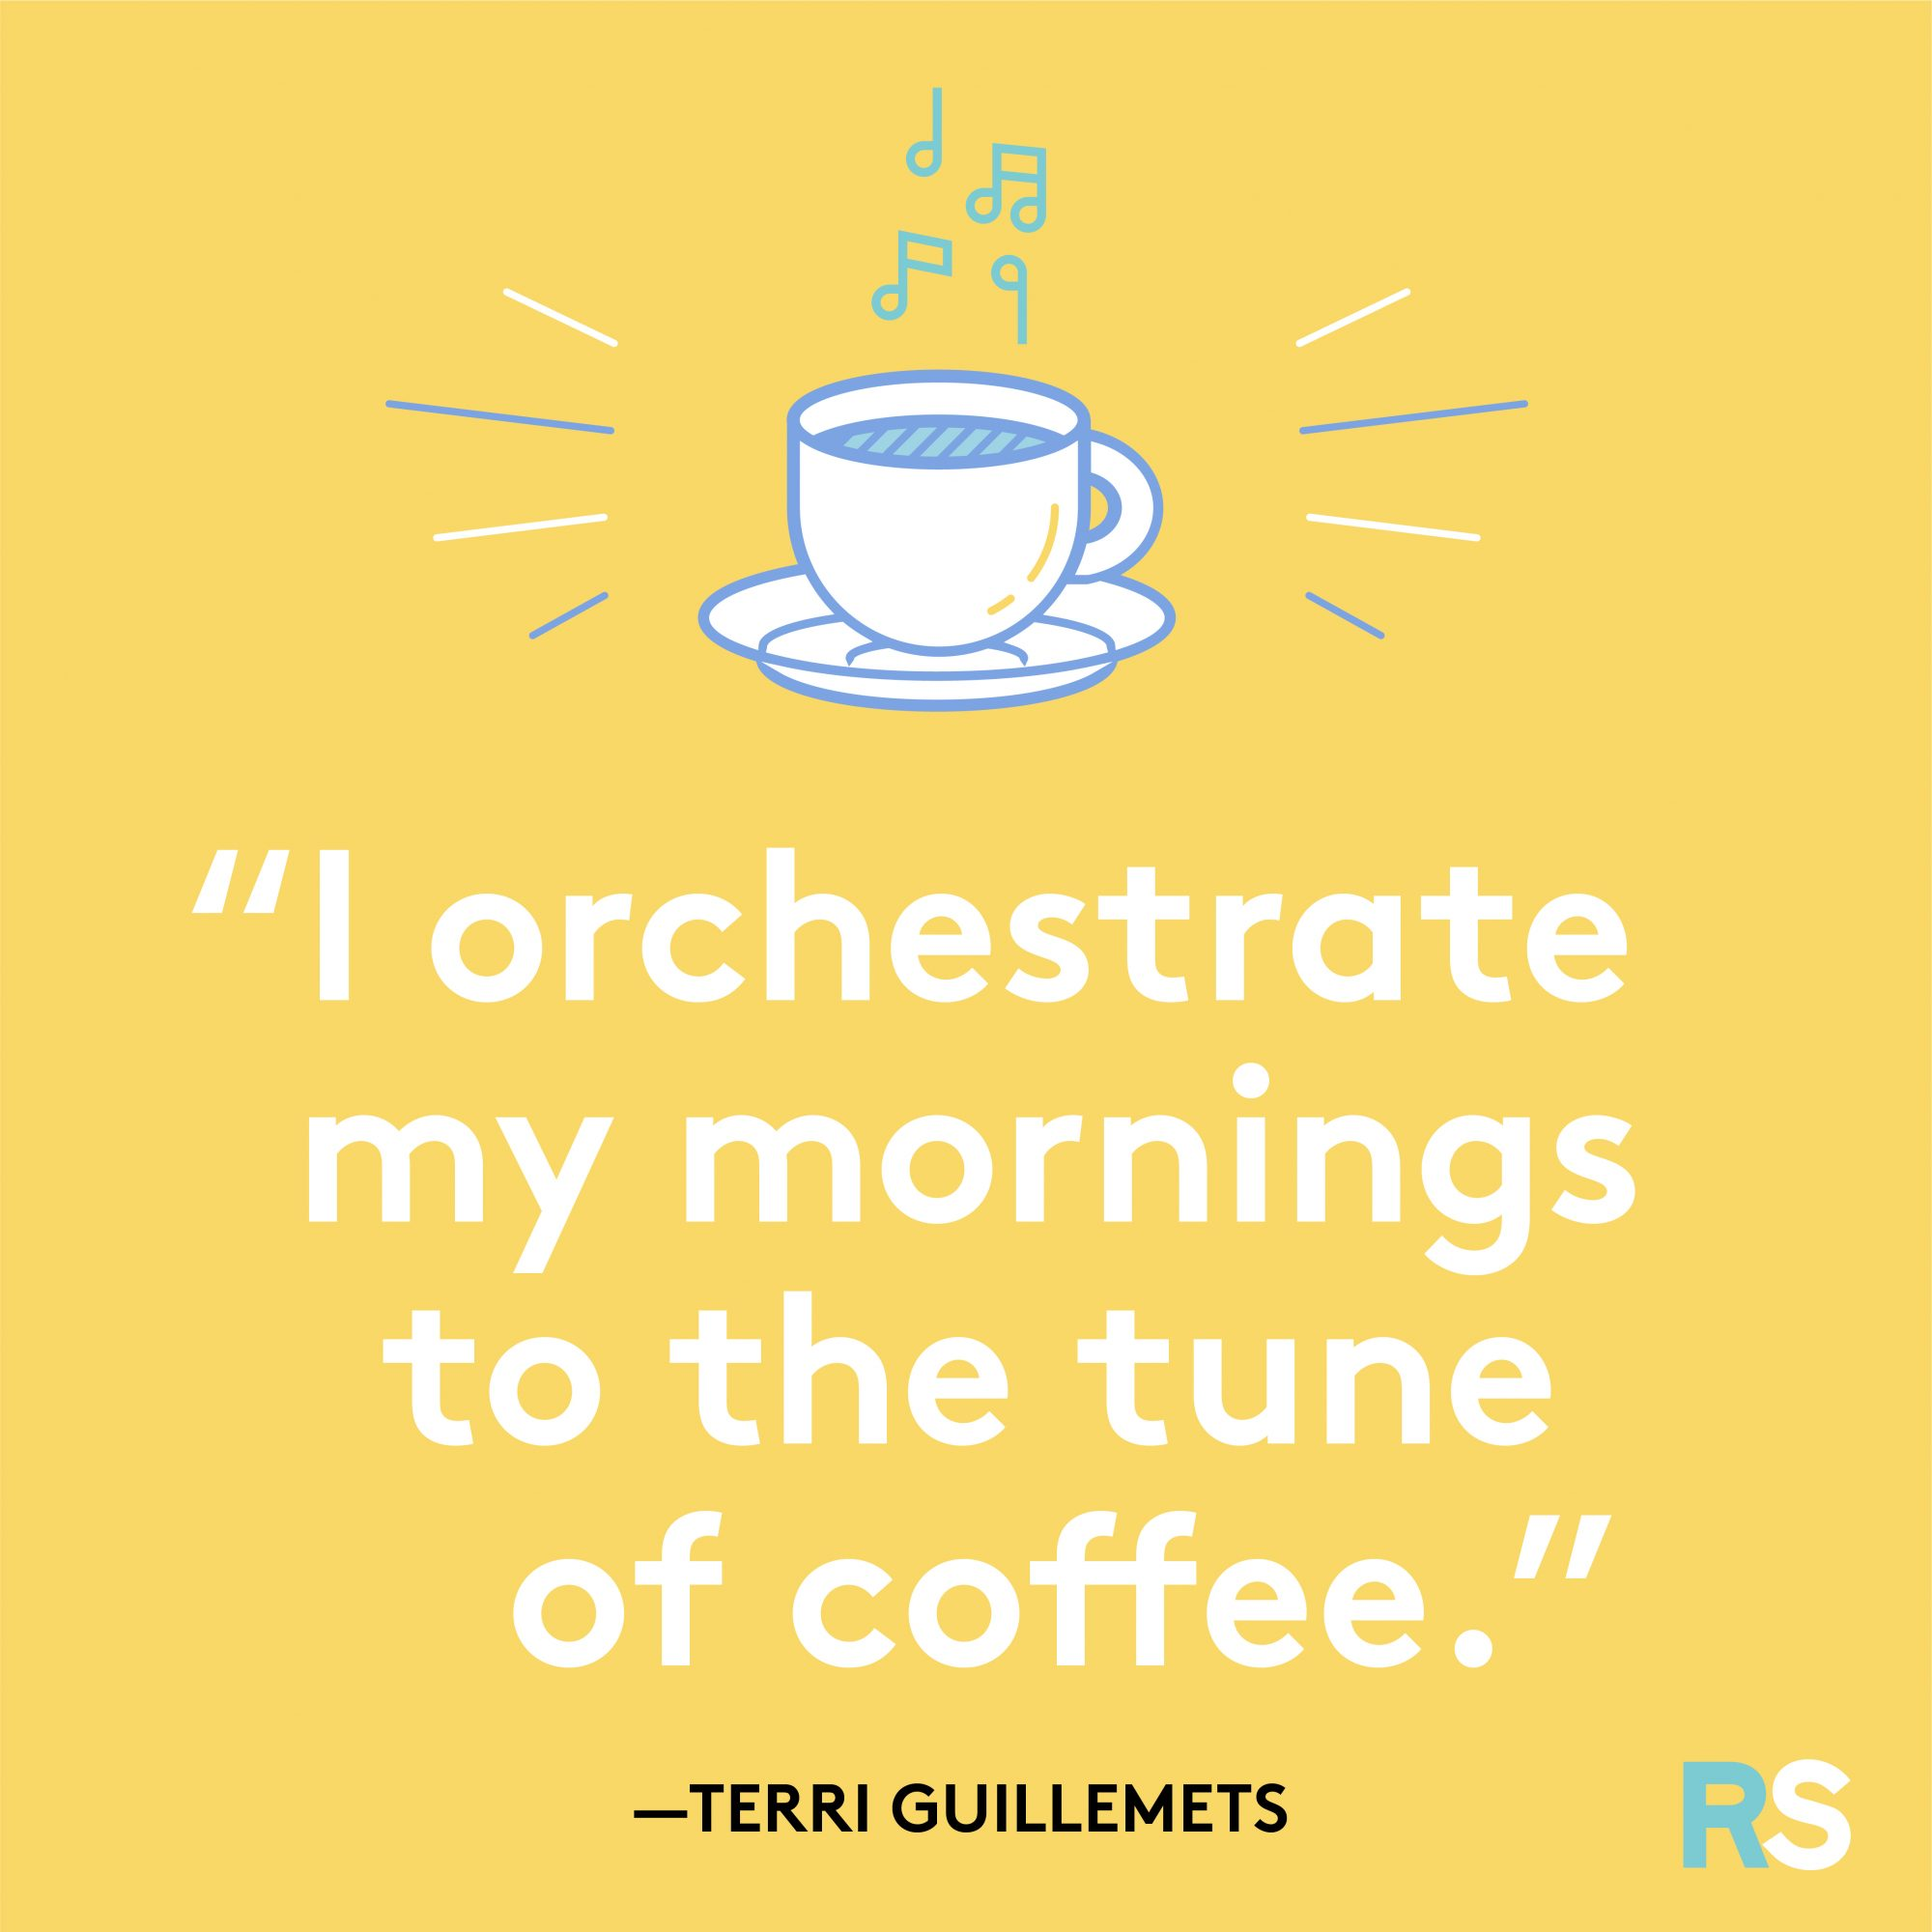 Orchestrate Morning to the Tune of Coffee Quote by Terri Guillemets